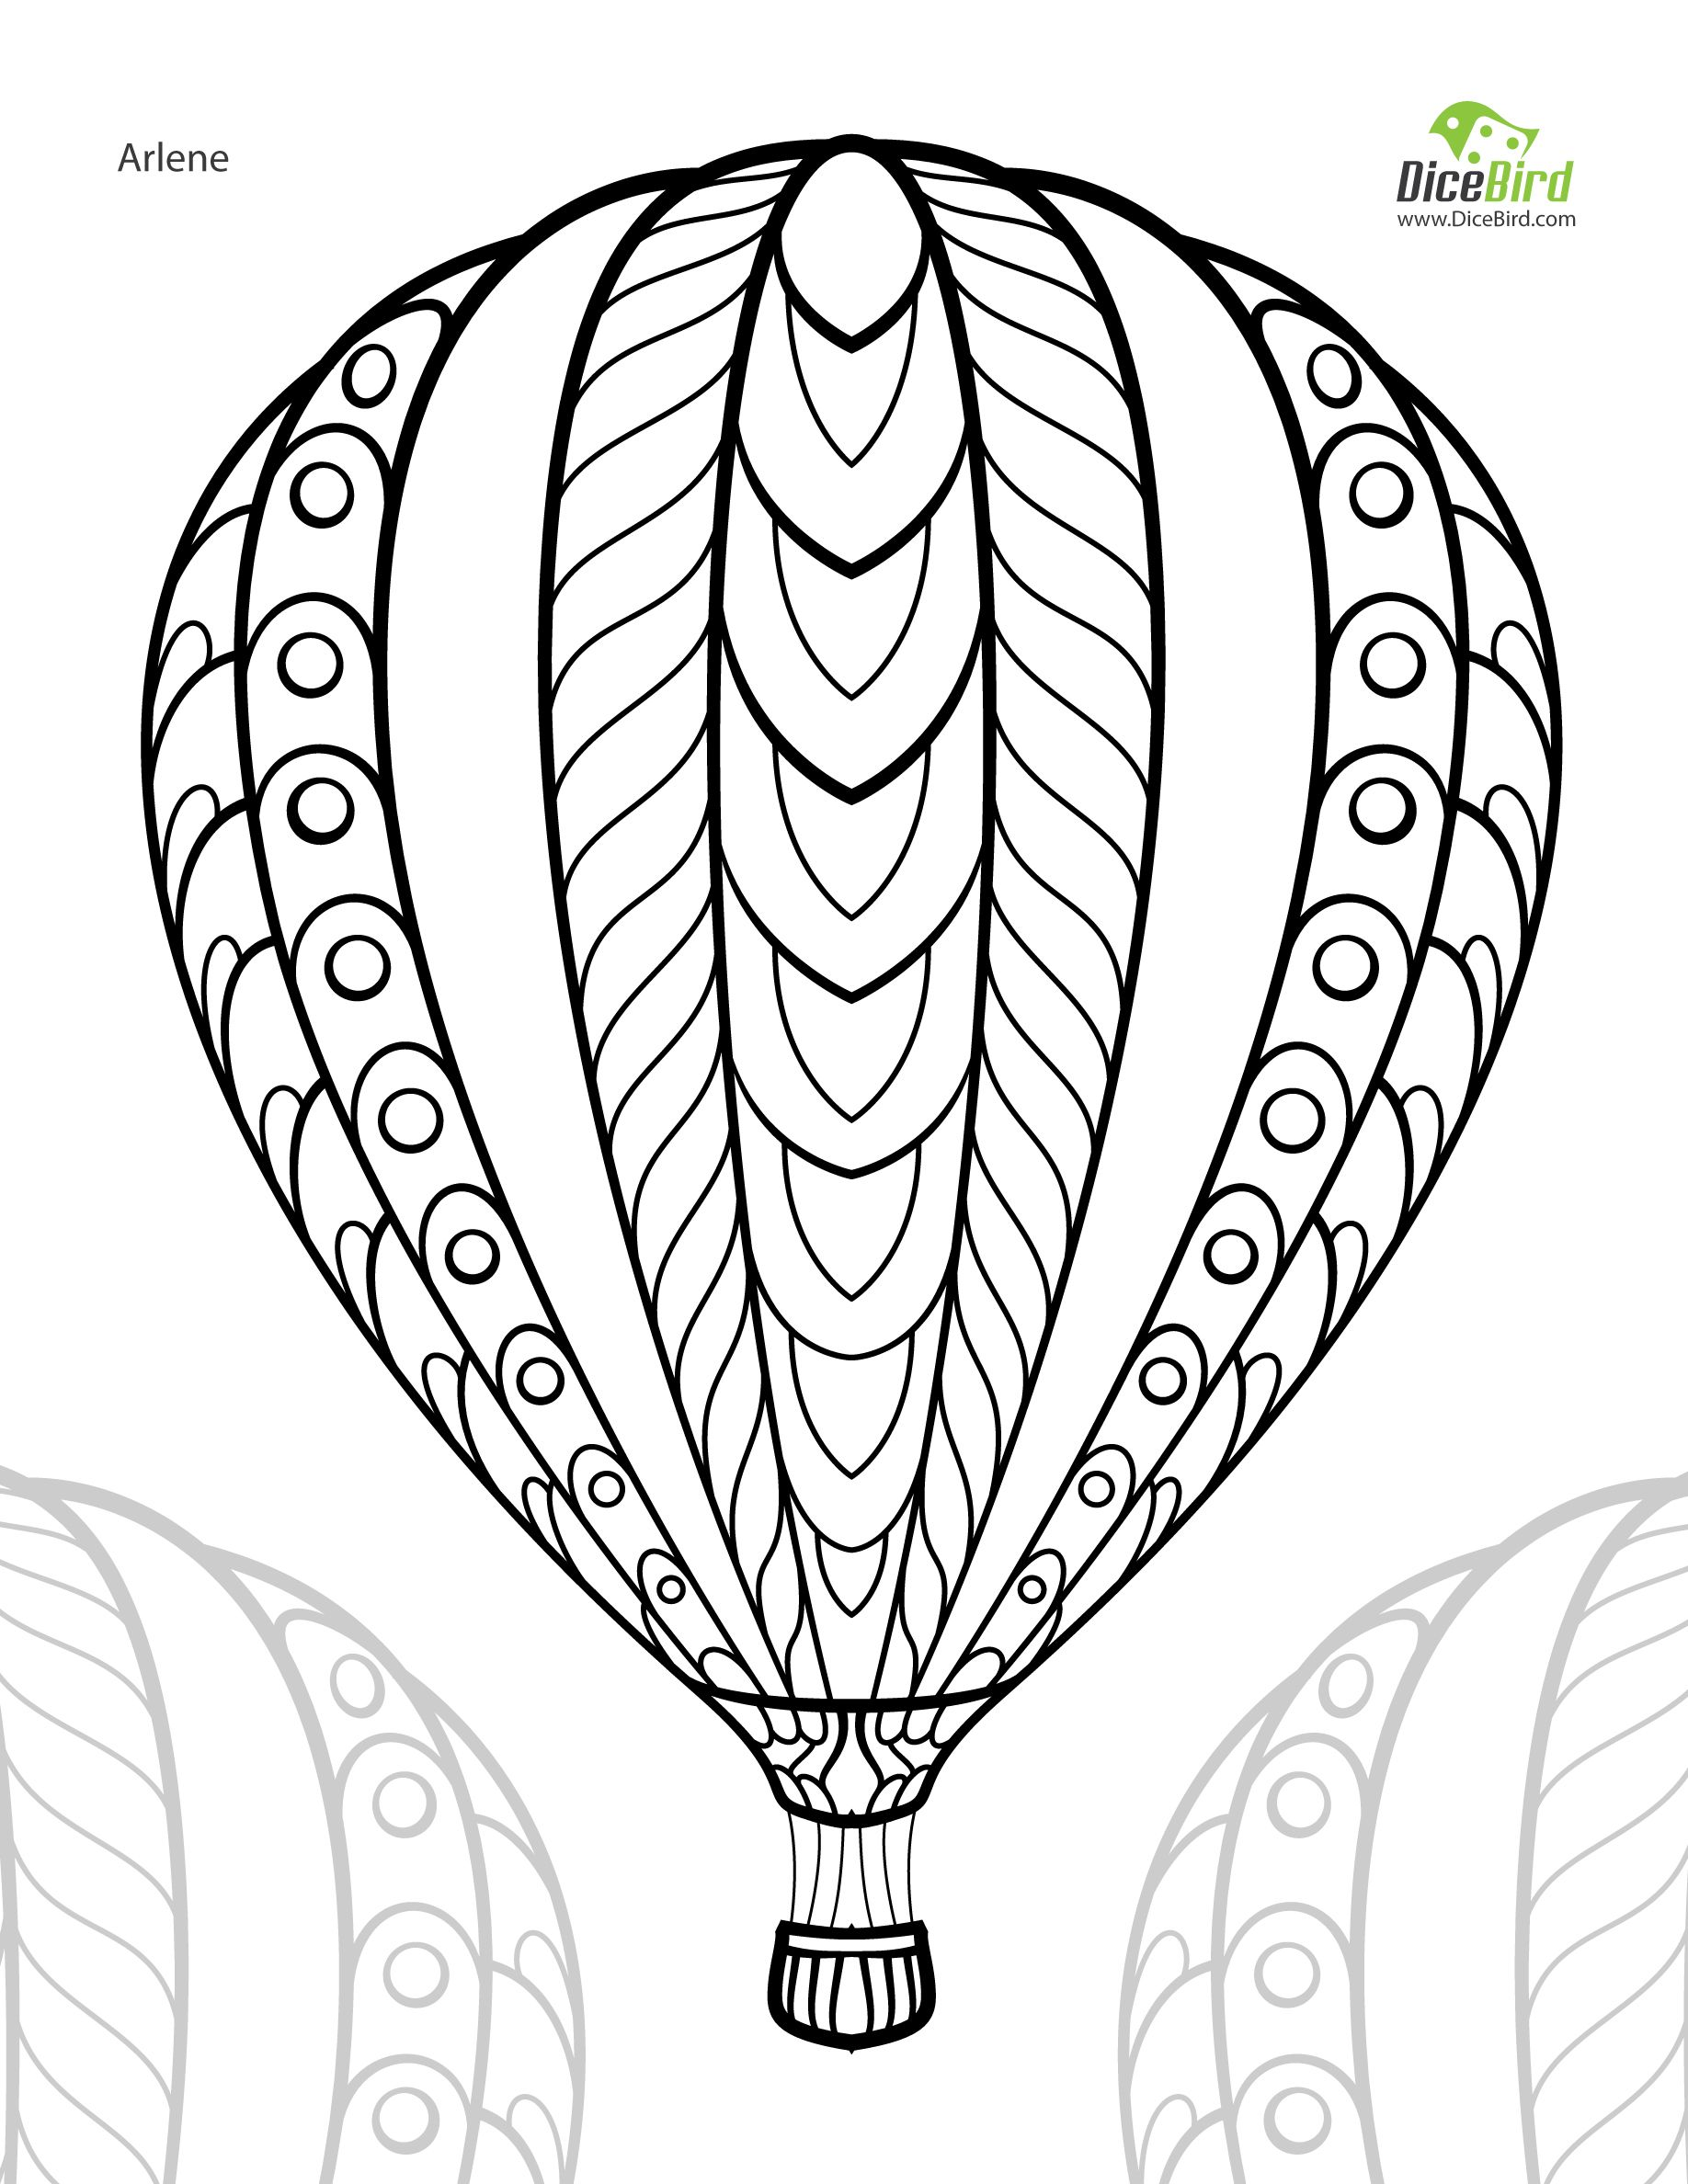 Awesome Hot Air Balloon Adult Coloring Sheets | DiceBird Free Printable Coloring  Pages